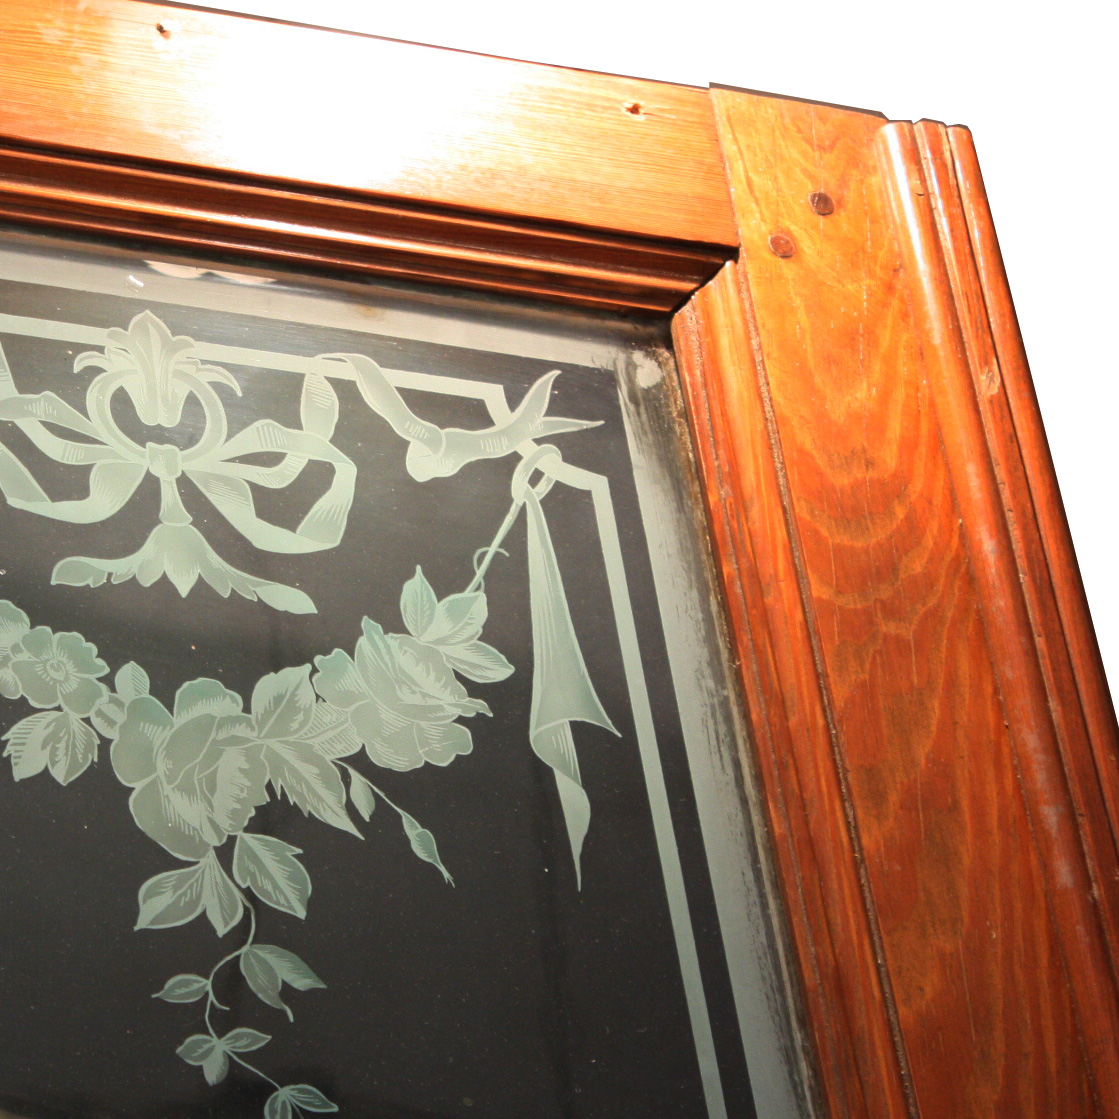 This is a gorgeous antique door with its original etched figural glass,  made in France in the 19th Century. The unusual triple layered etching  creates ... - Stunning Antique French Figural Etched Glass Door, 19th Century